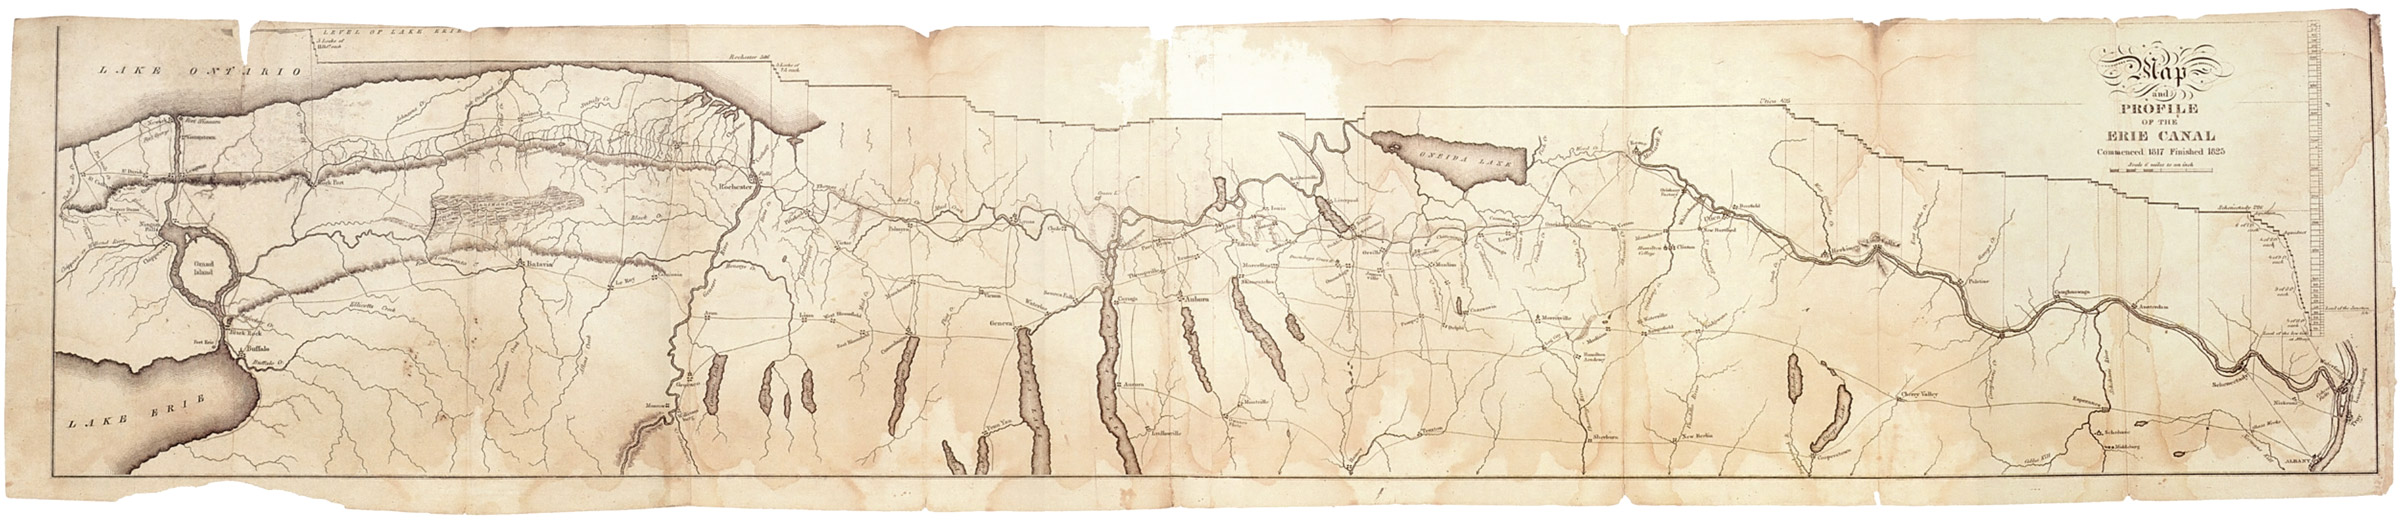 Map and profile of the Erie Canal -- Originally published in: Laws of the State of New York, in relation to the Erie and Champlain canals / Published by authority, under the direction of the Secretary of State (E. and E. Hosford, printers, Albany, 1825).